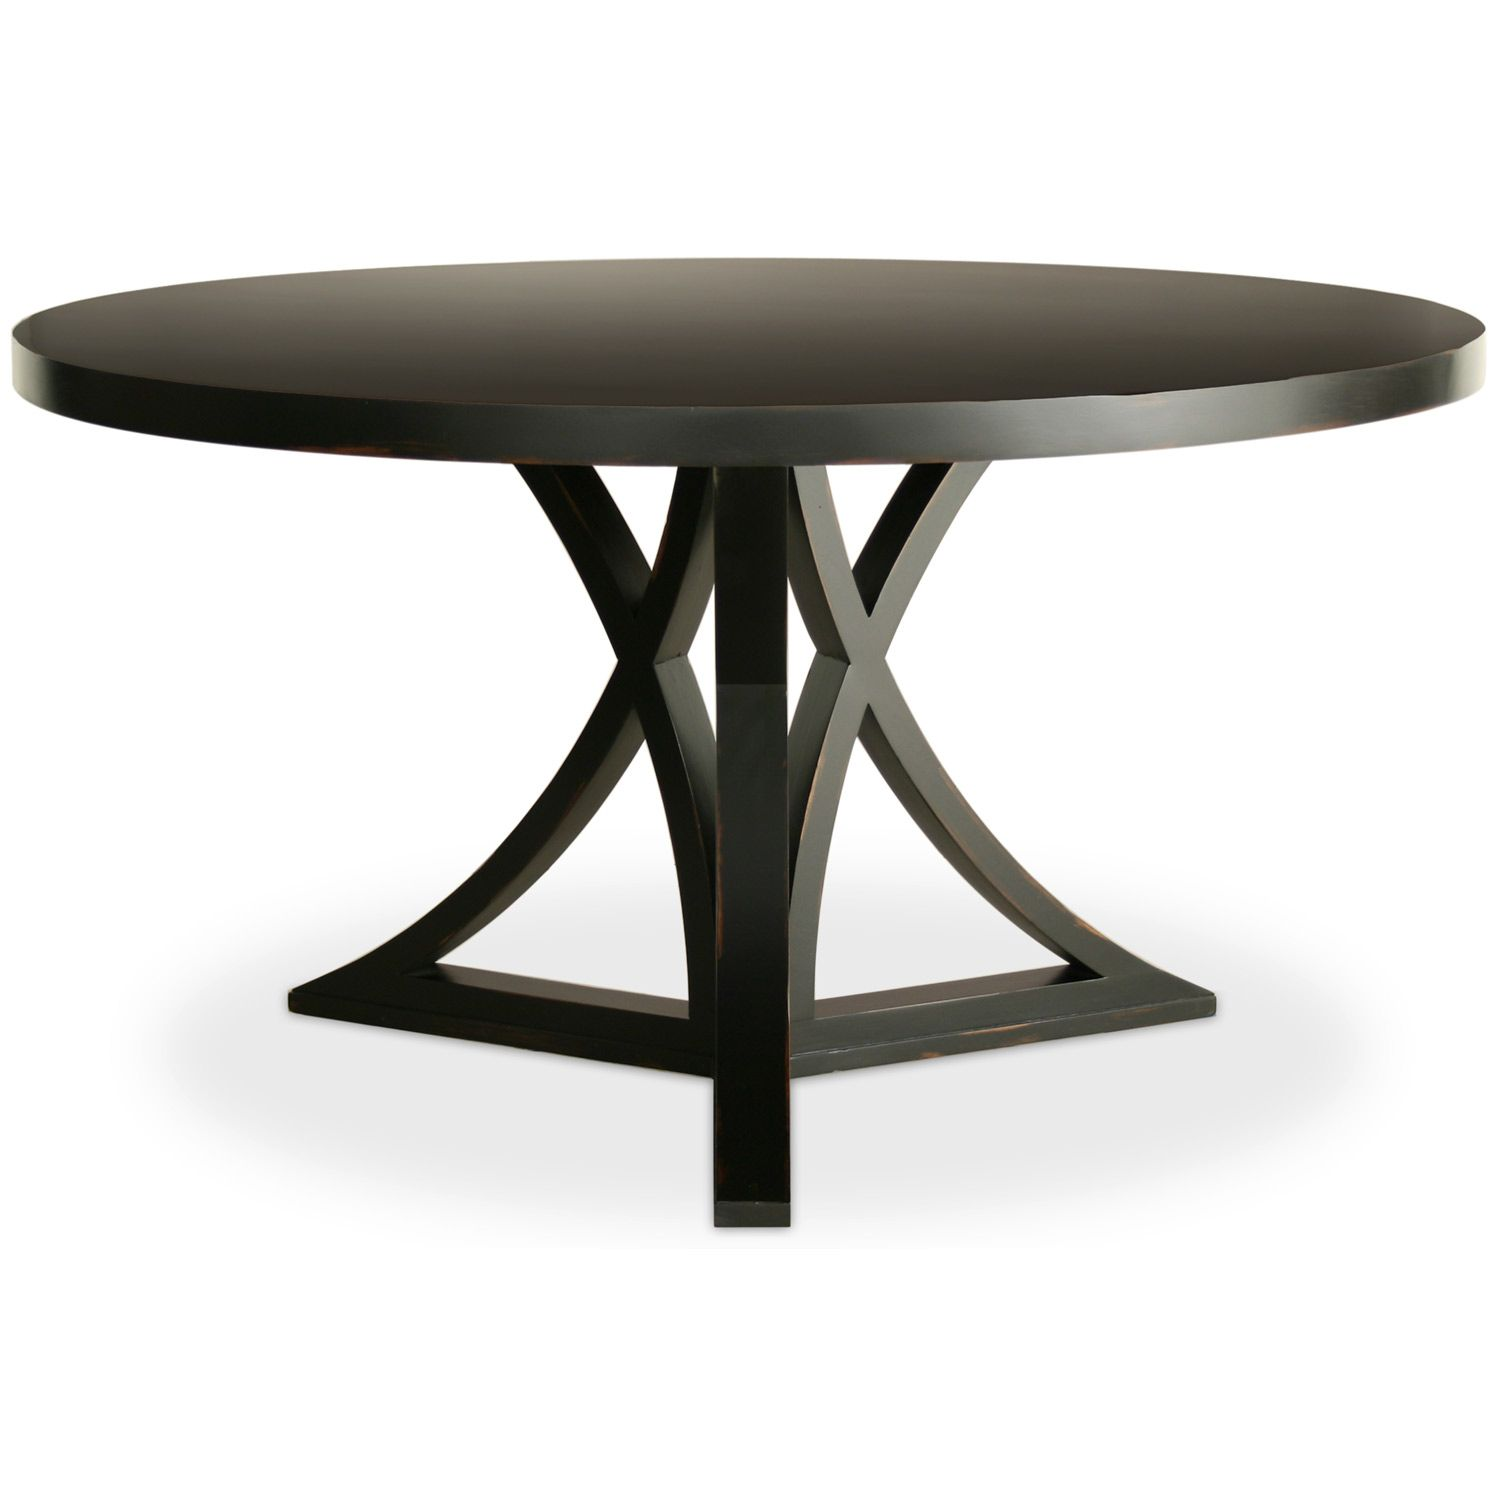 the kitchen table An unusual curved X base puts a geometric twist on the Redford House Floyd dining table This eye catching round furnishing is an ideal complement to